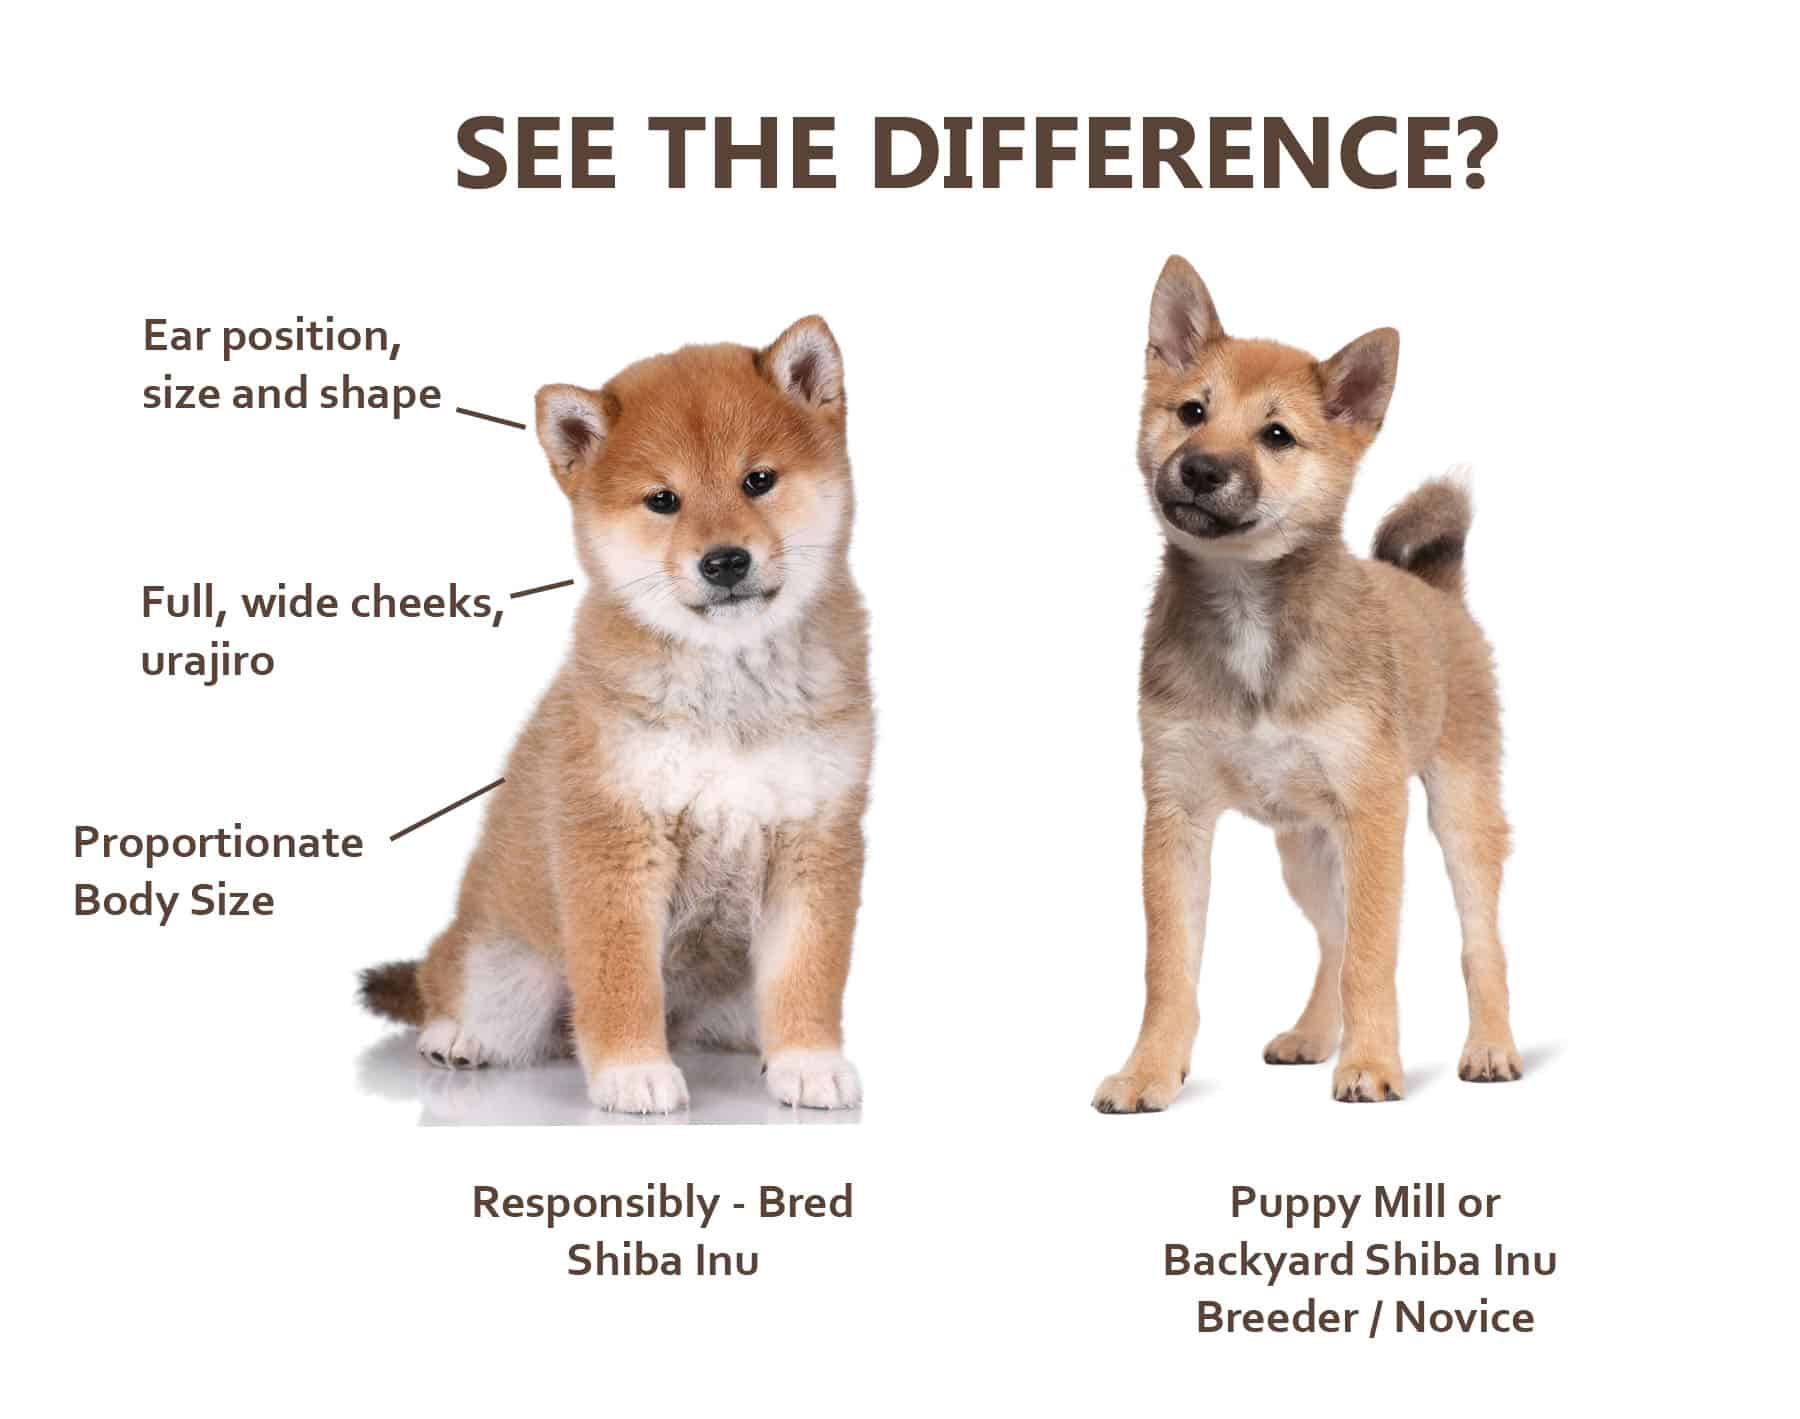 How Much Do Shiba Inu Puppies Cost? - My First Shiba Inu